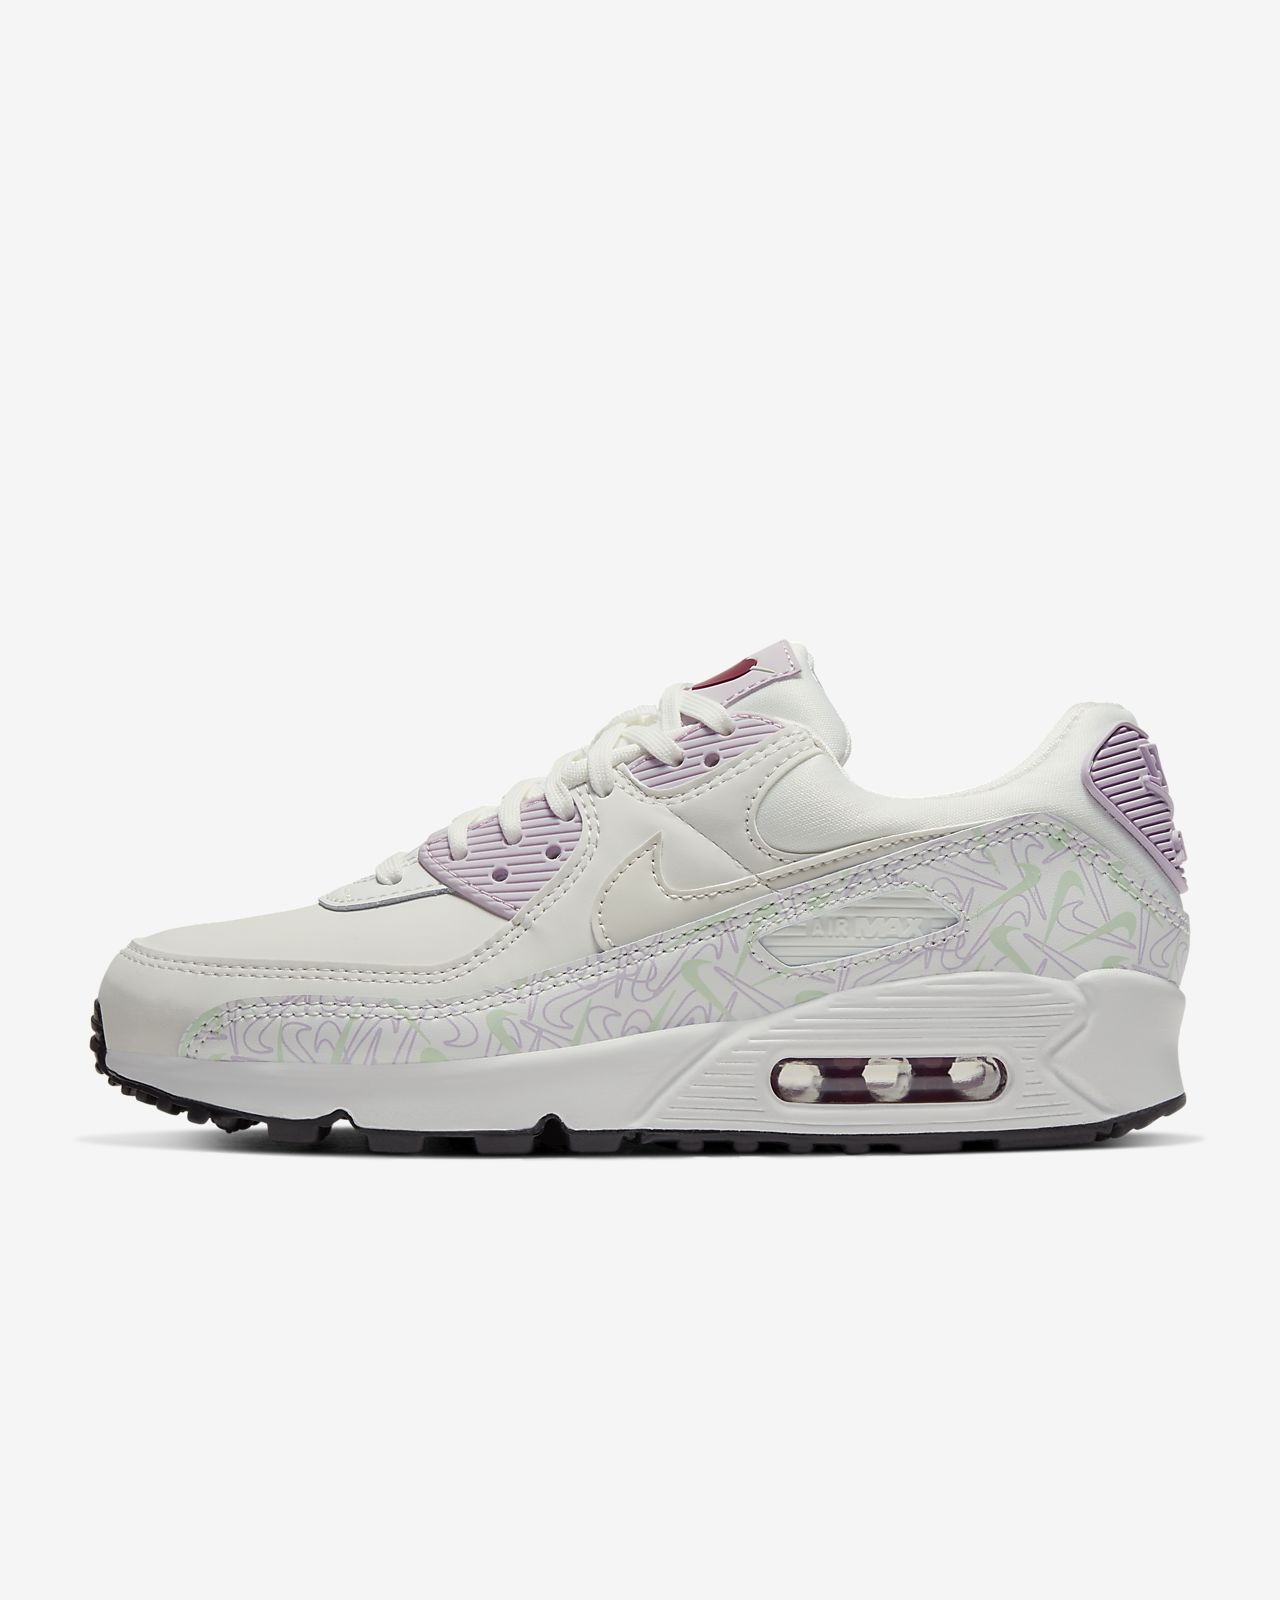 Chaussure Nike Air Max 90 Valentine's Day pour Femme